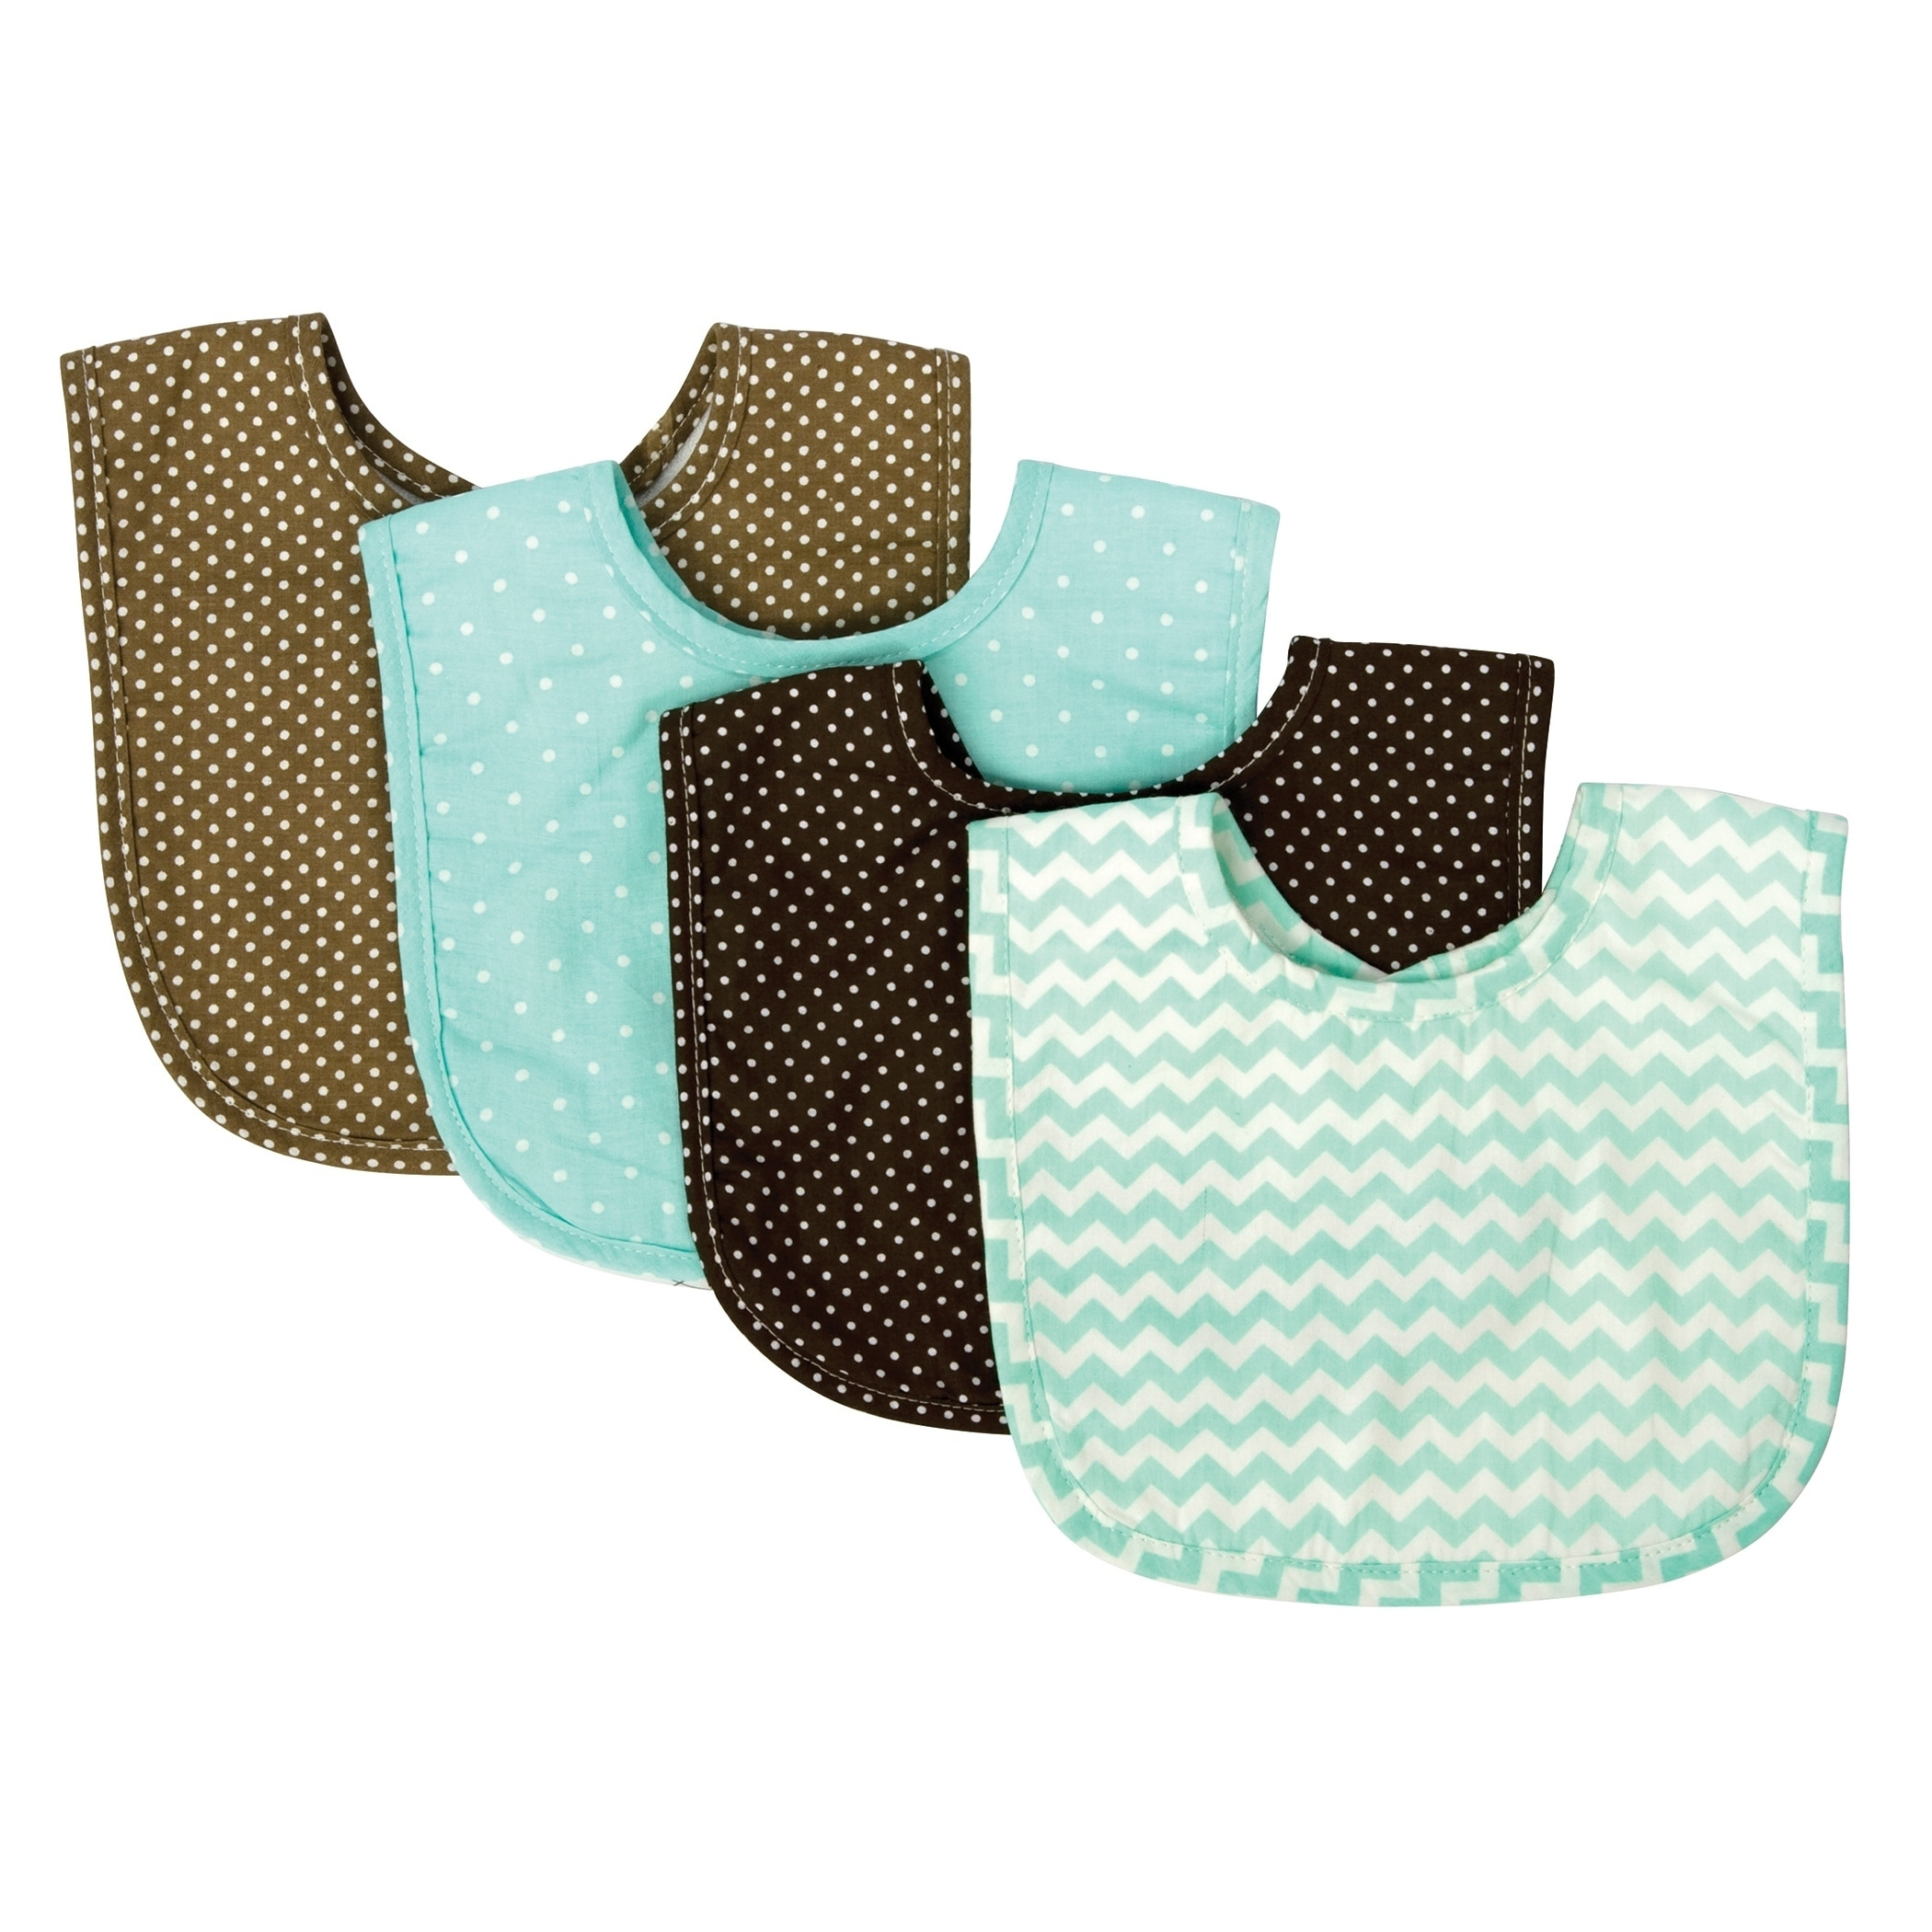 Trend Lab Cocoa Mint 4 Pack Bib Set, Multi